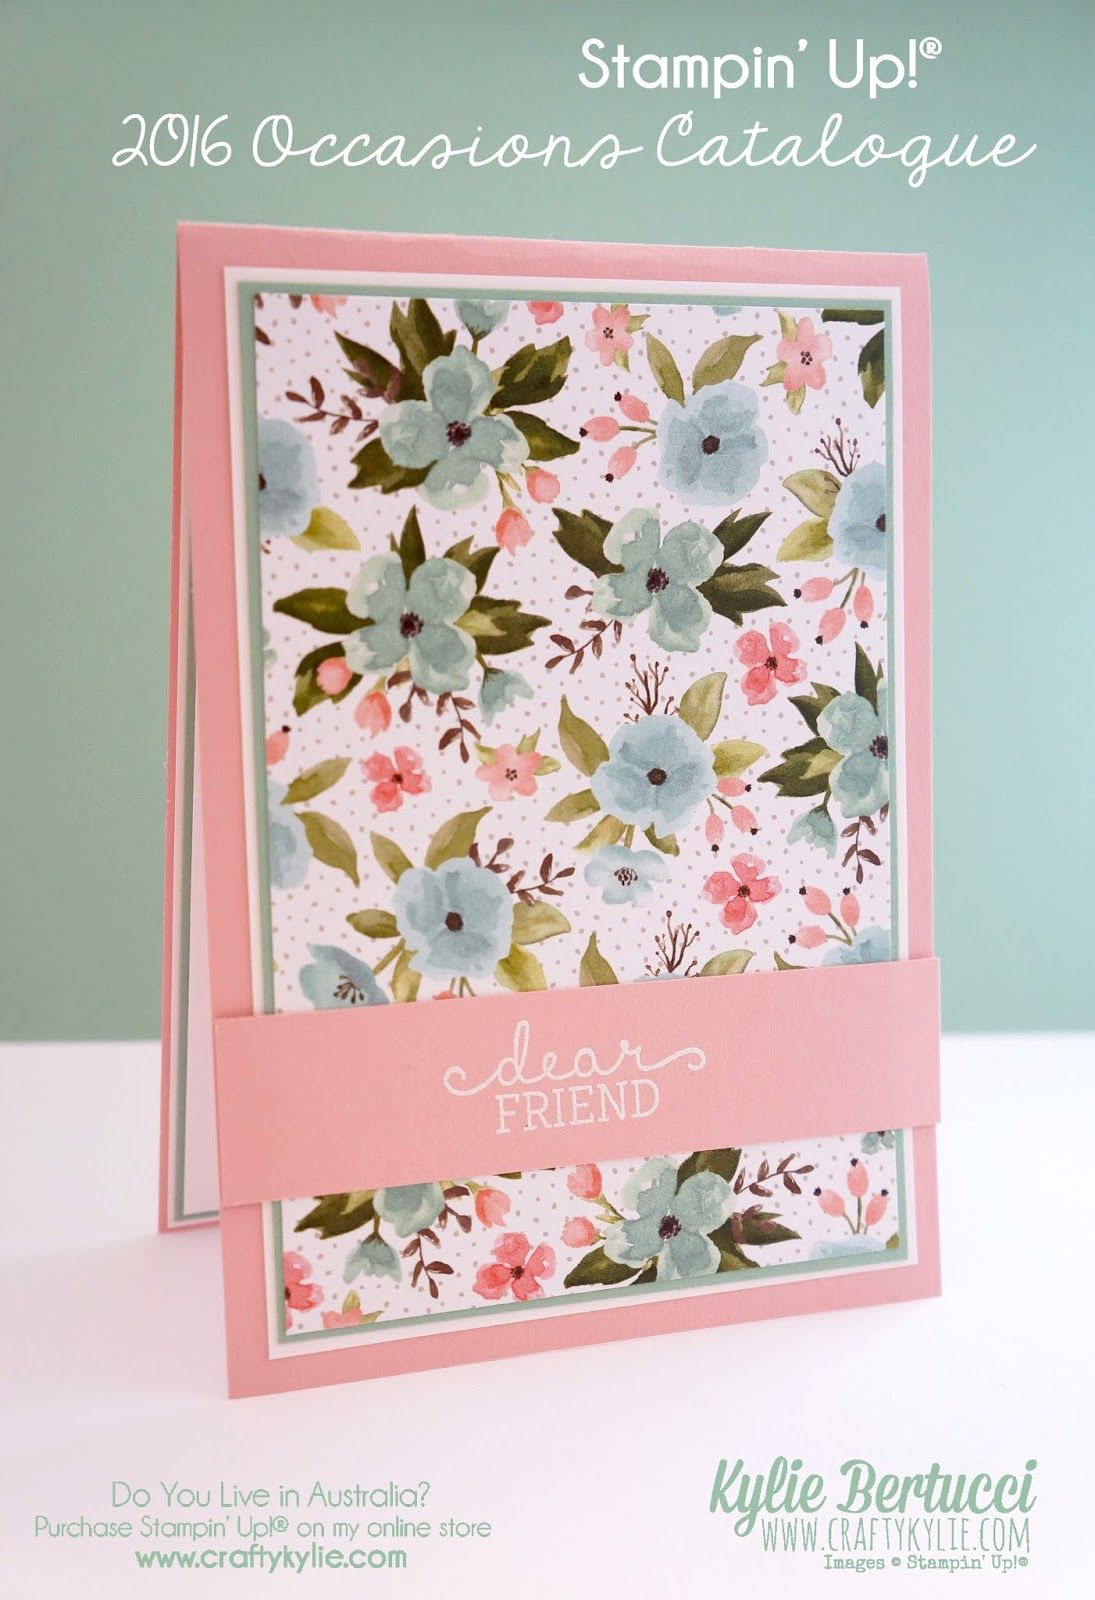 Kylie Bertucci - Global Design Project - Love. Click on the picture to see more of Kylie's projects and be inspired! #GDP019 #stampinup #kyliebertucci #occasions2016